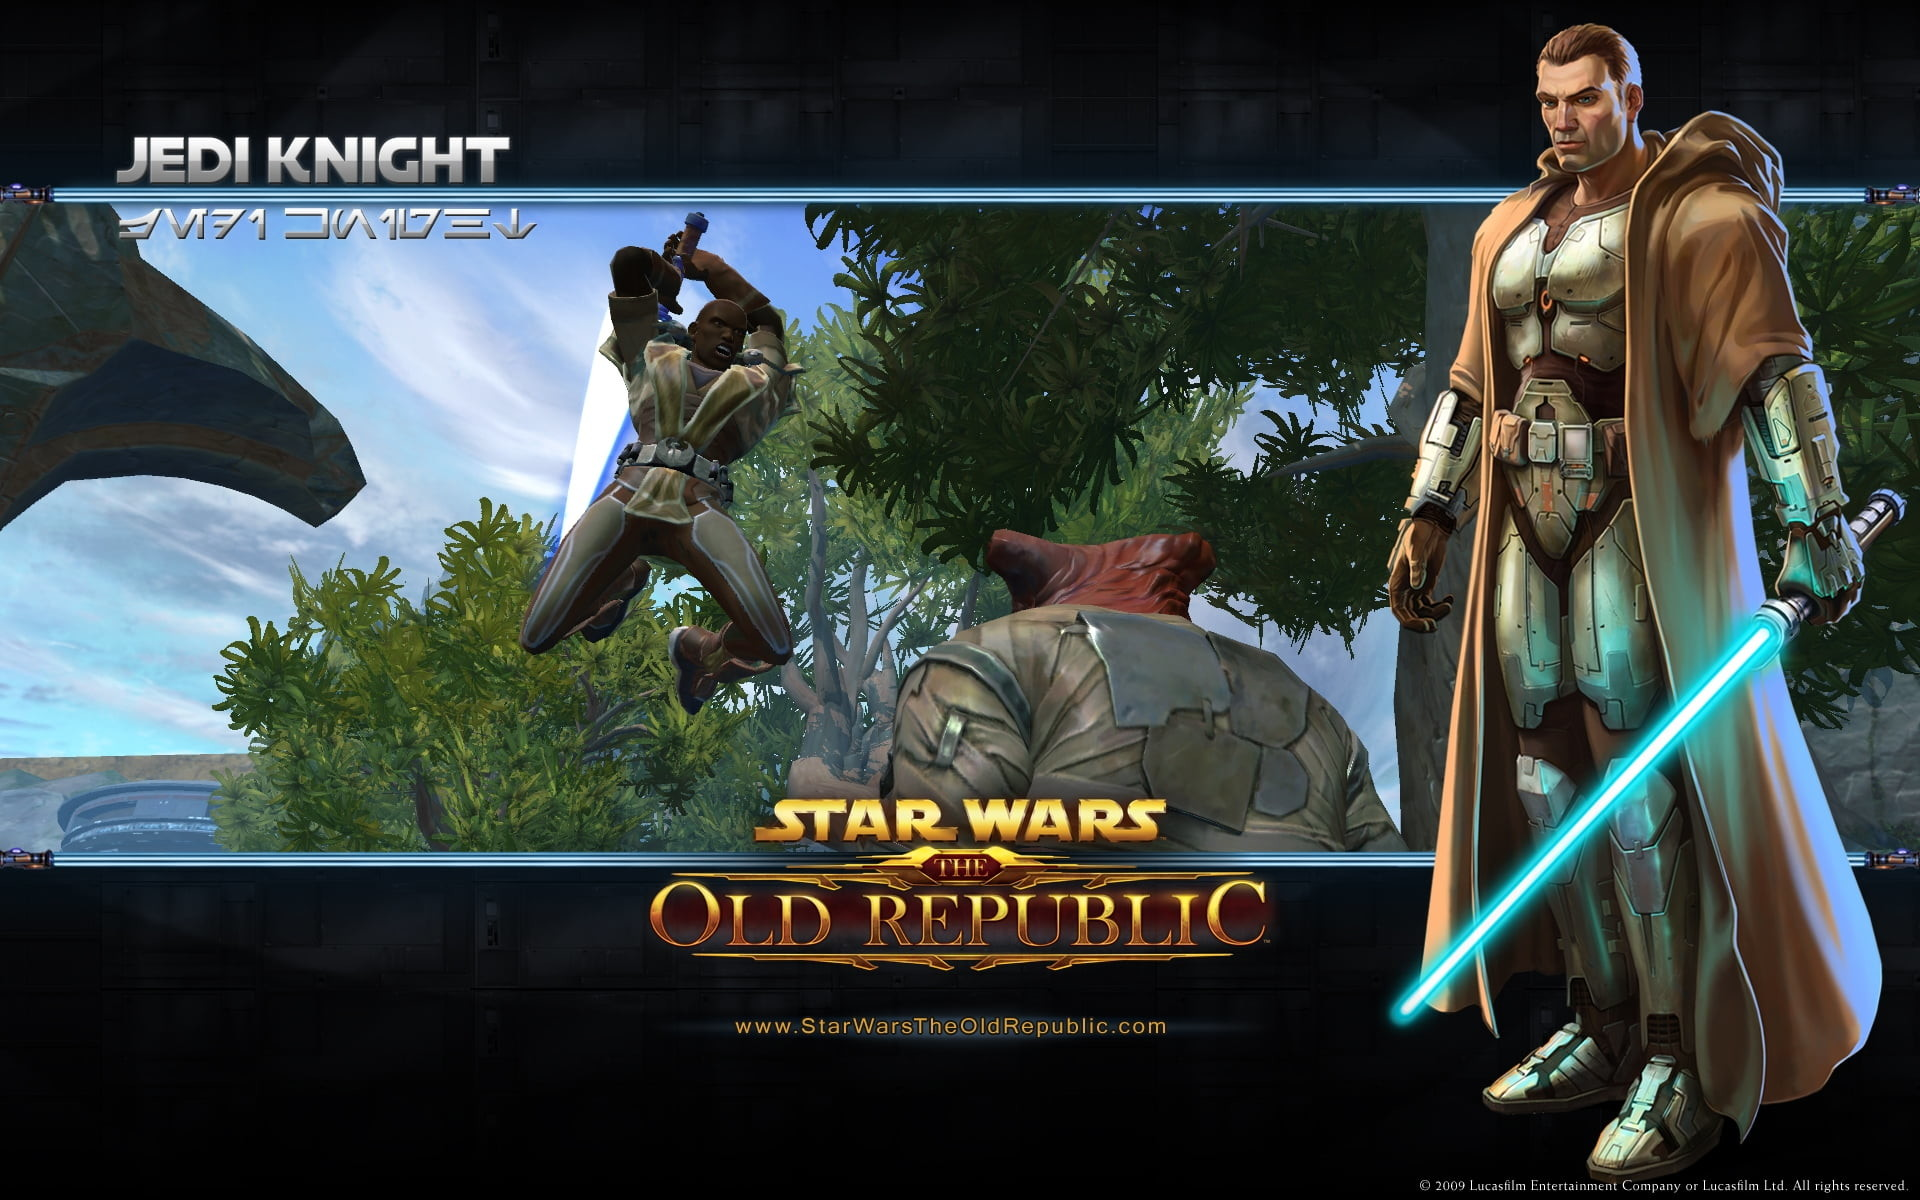 1920x1200 Star Wars Old Republic Jedi Knight poster HD wallpaper